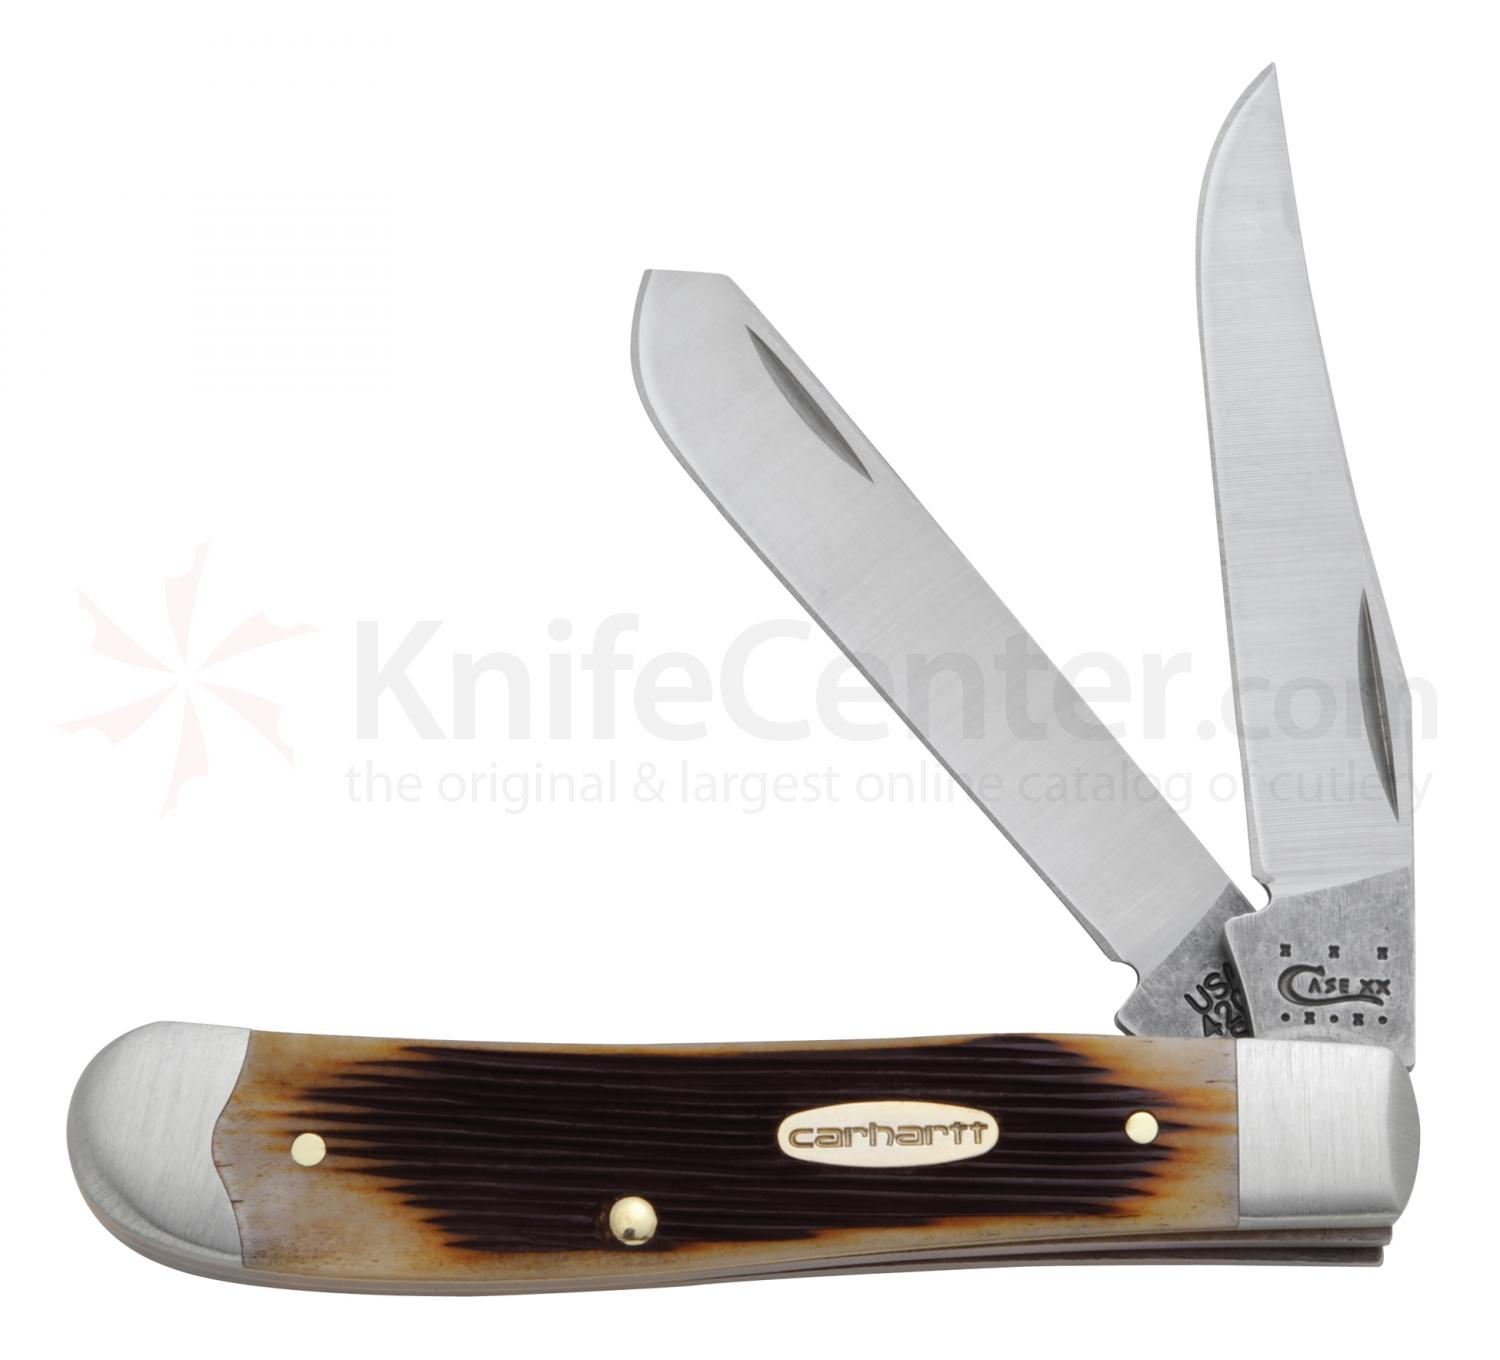 Case Carhartt Dark Molasses Bone Mini Trapper 3-1/2 inch Closed (6207 SS)